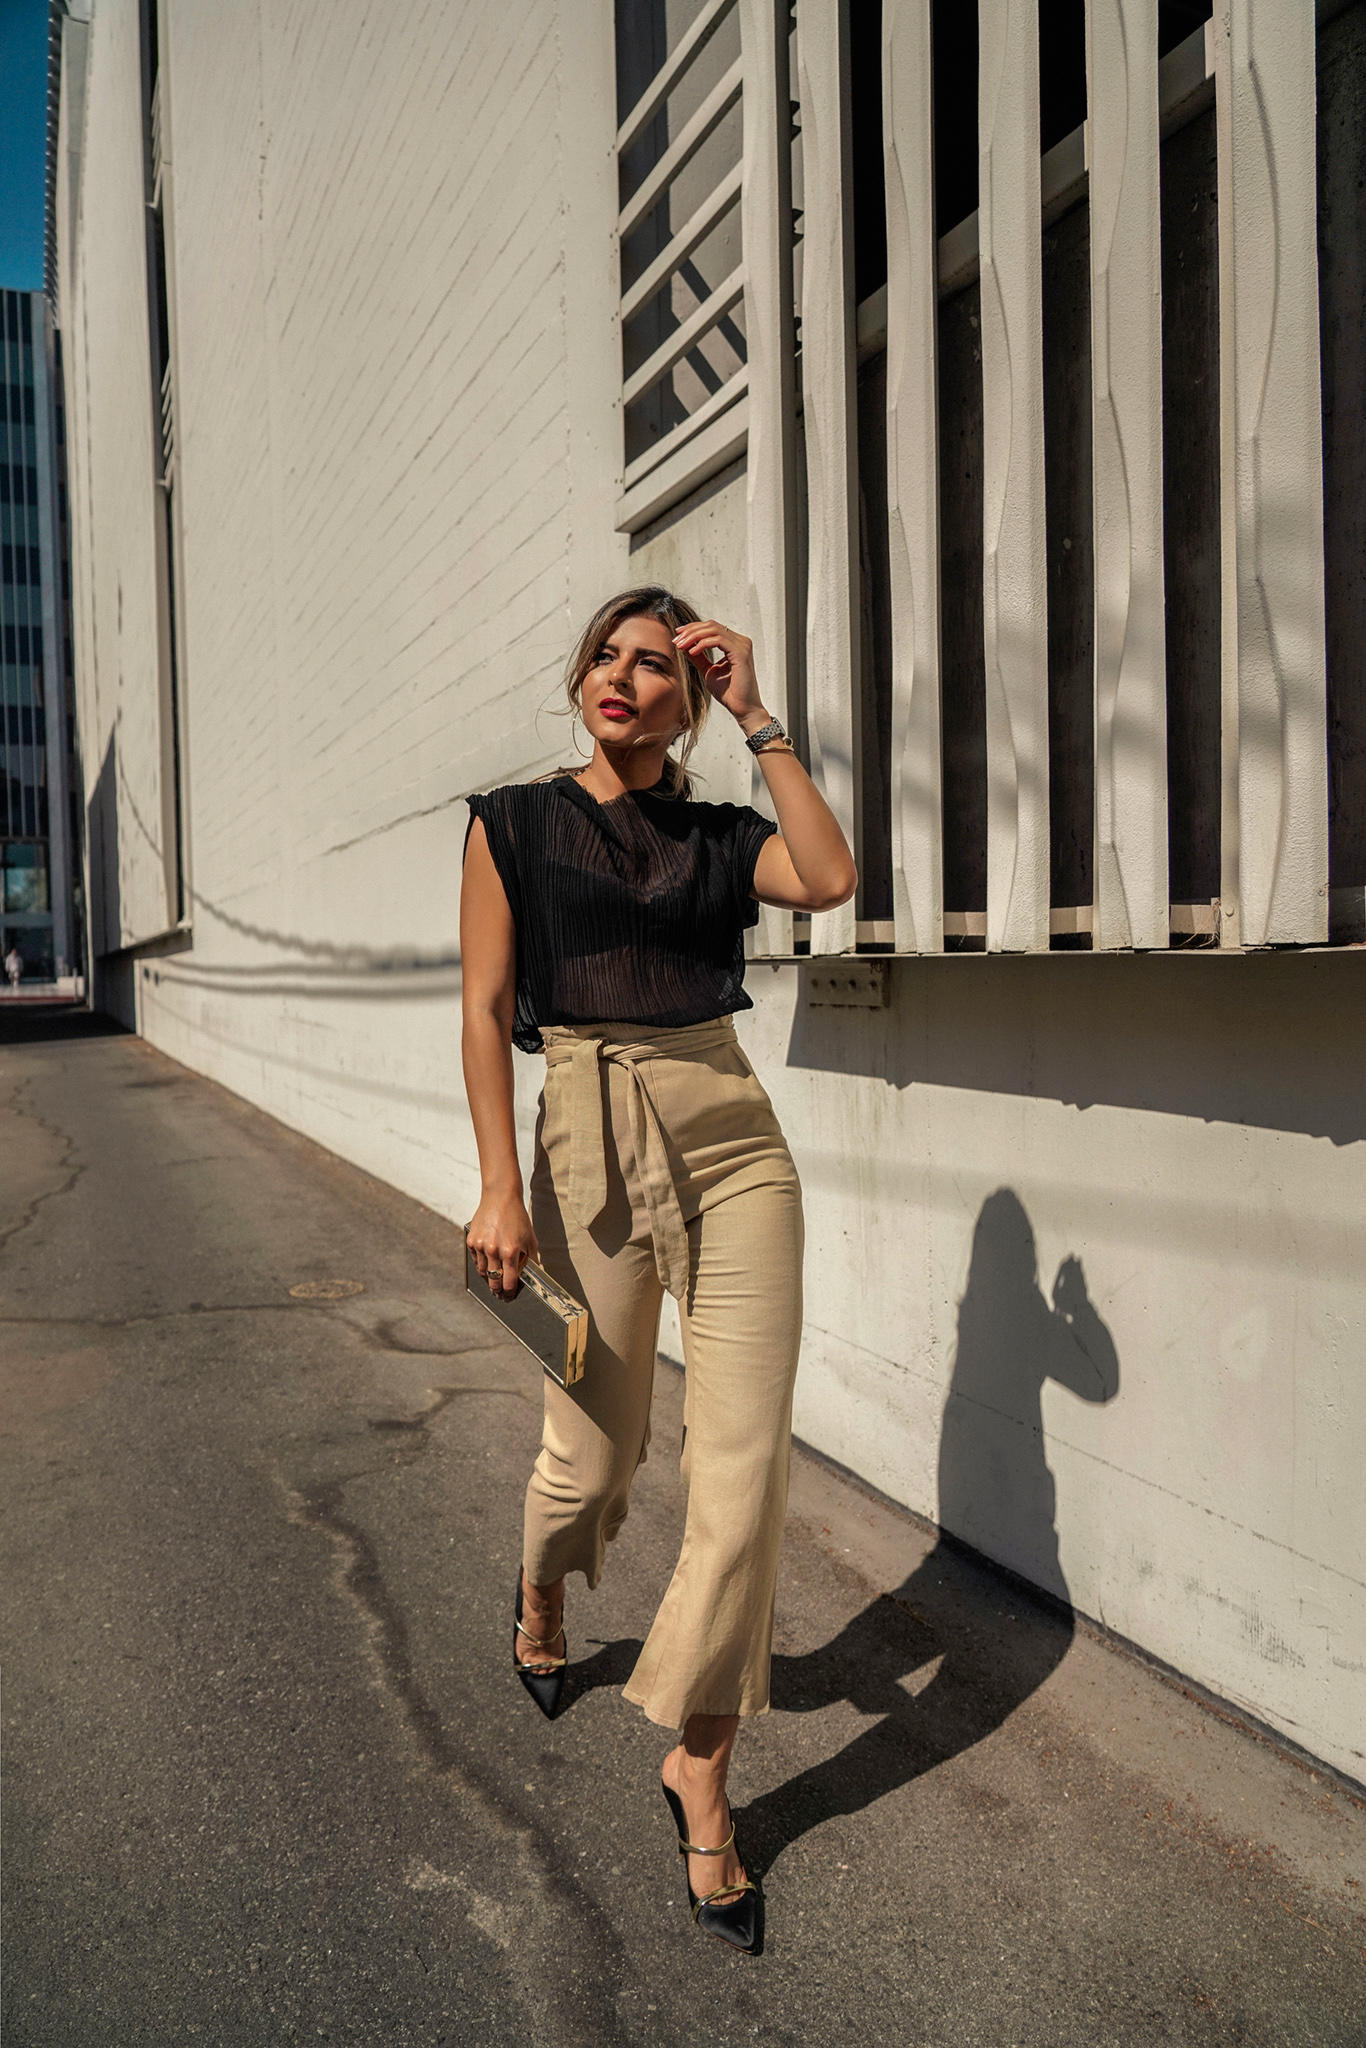 Chic Outfits That Never Go Out of Style by Pam Hetlinger | TheGirlFromPanama.com | Black Sheer Top, Sheer top outfit, tie waist trousers, chic weekend style, classy style